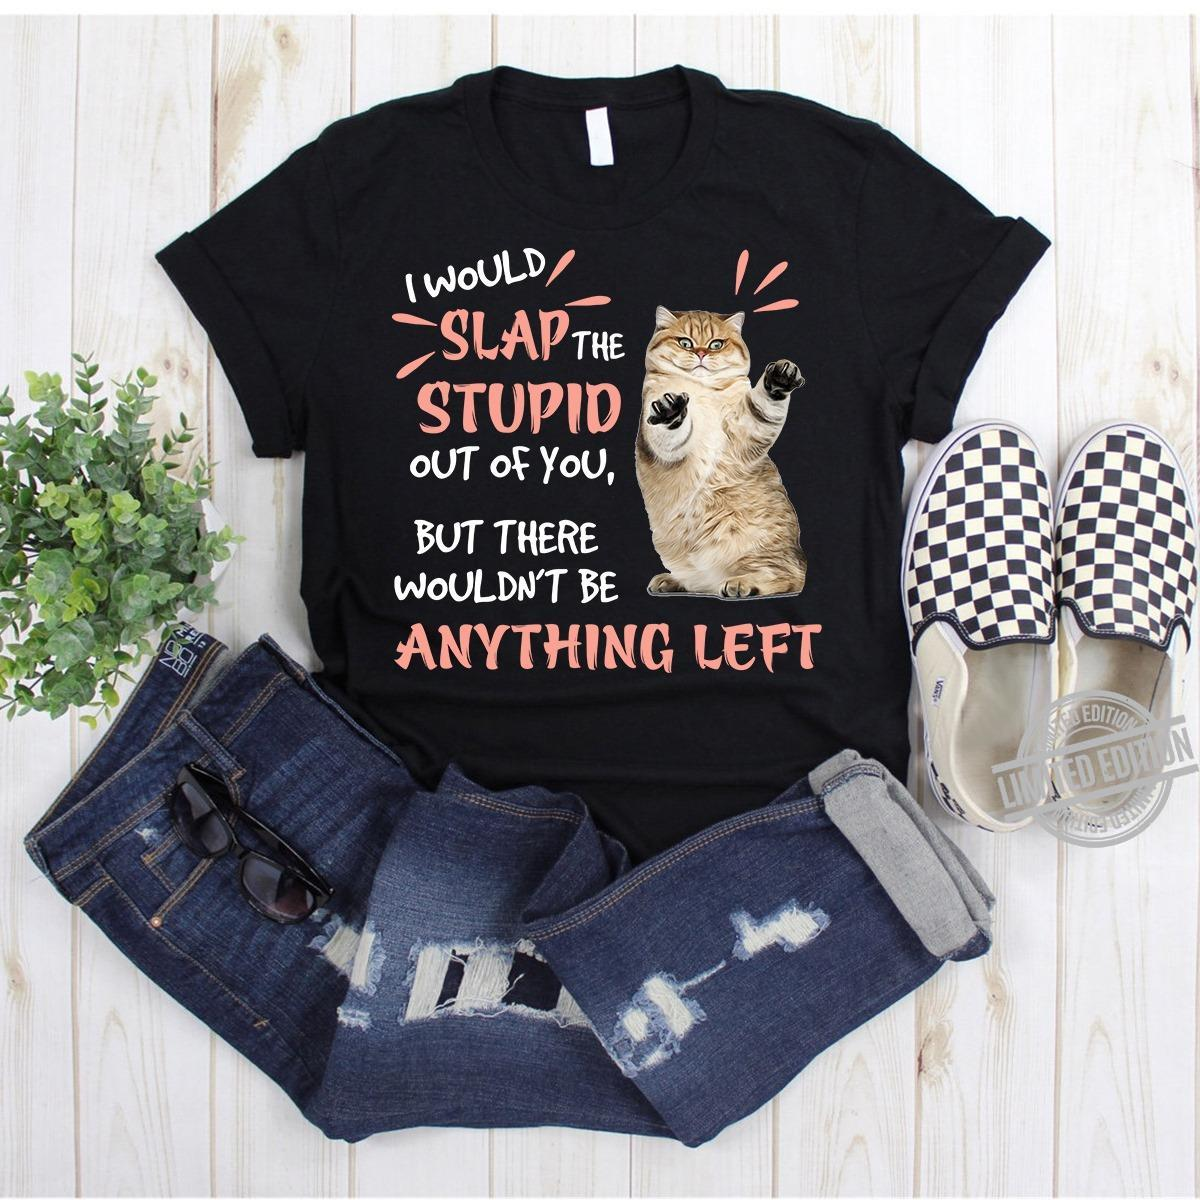 The Cat I Would Slap The Stupid Out Of You But There Wouldn't Be Anything Left Shirt